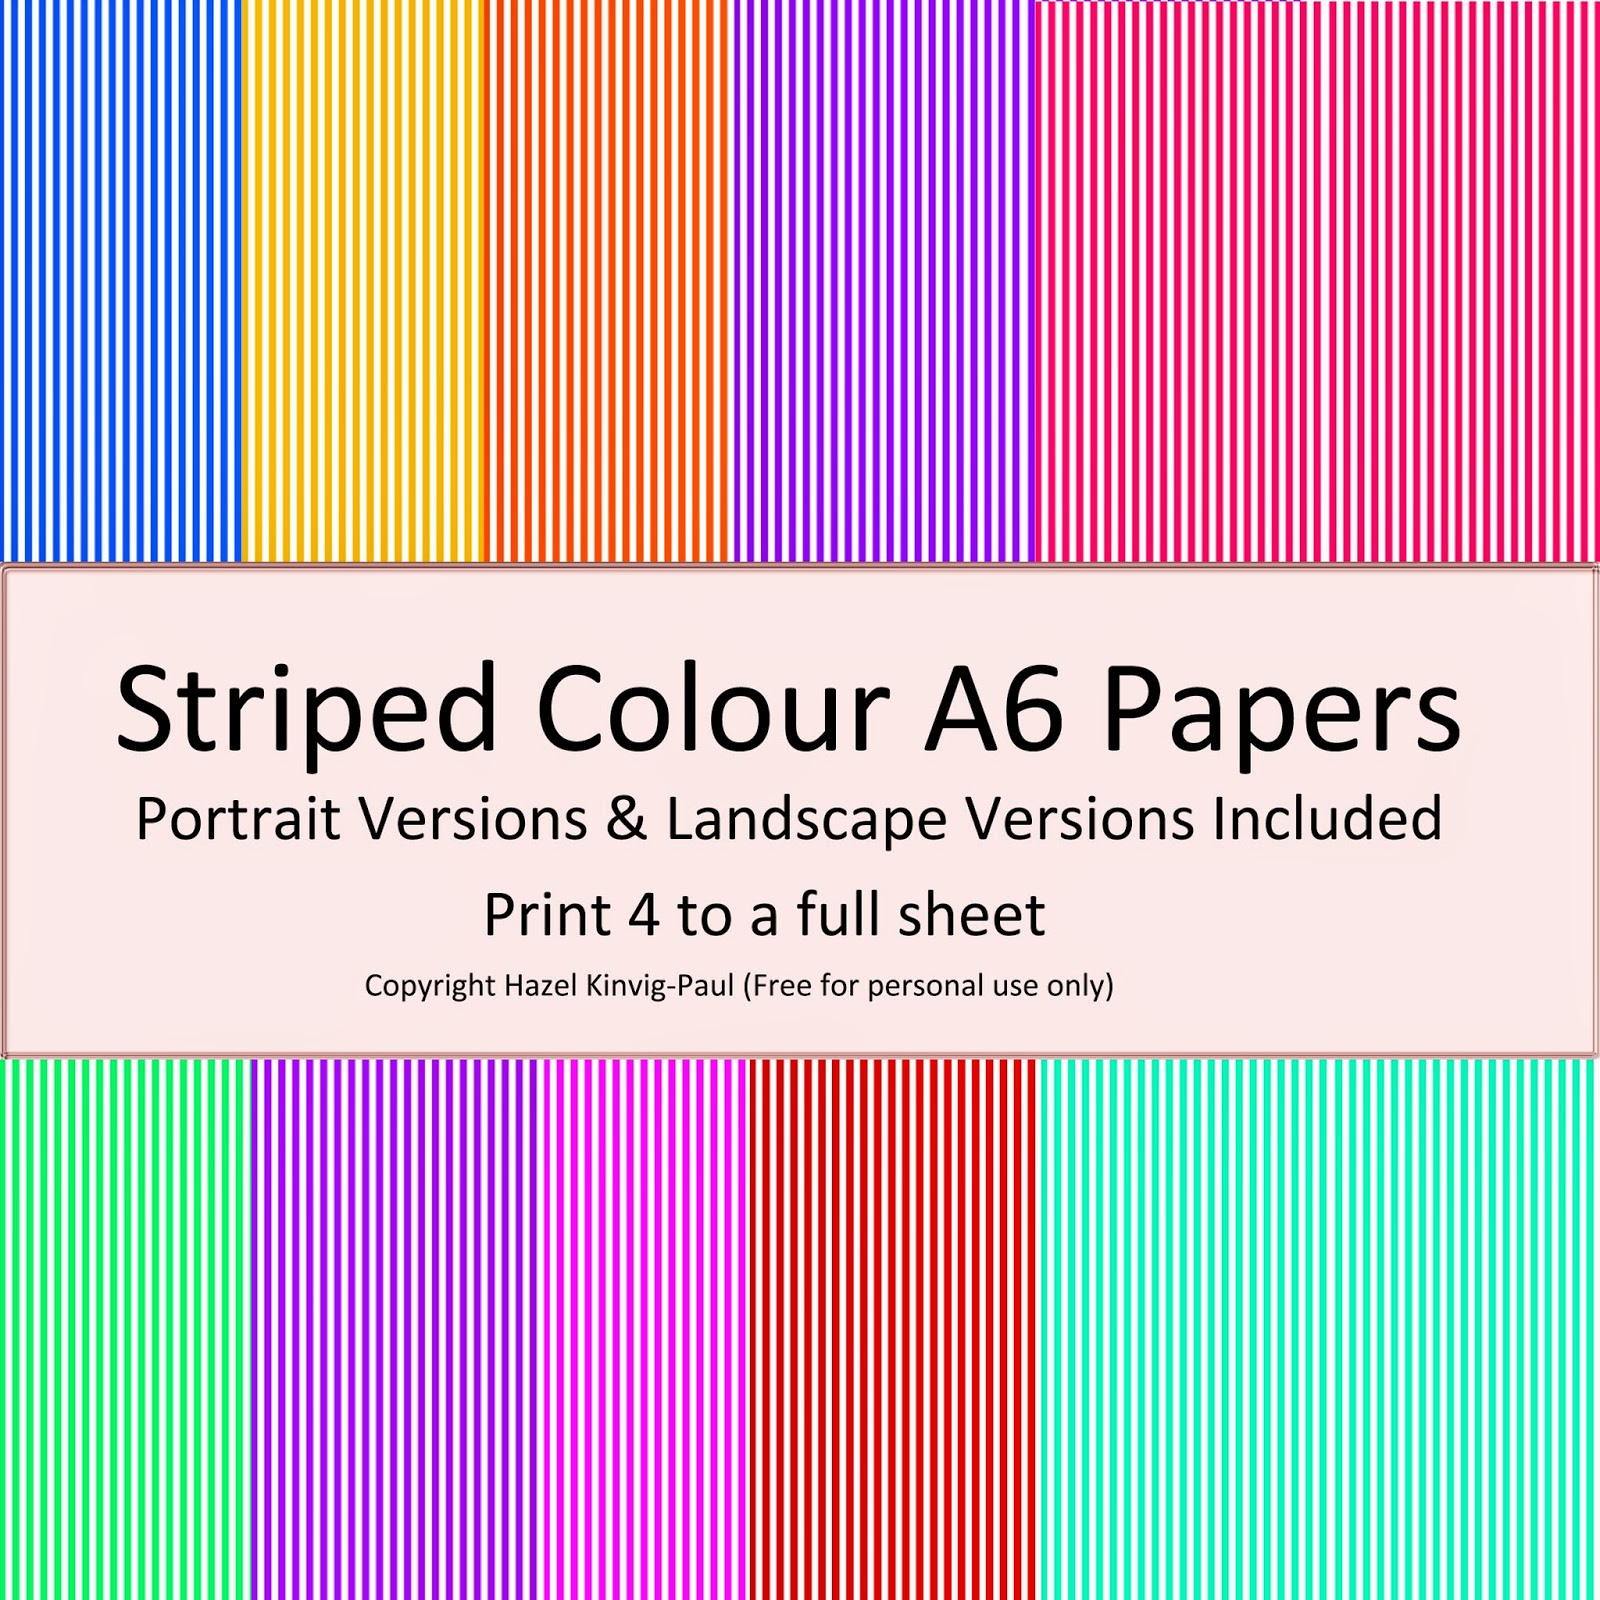 http://www.mediafire.com/download/m8r8a9bwglpeemv/A6_Striped_White_&_Colour.zip